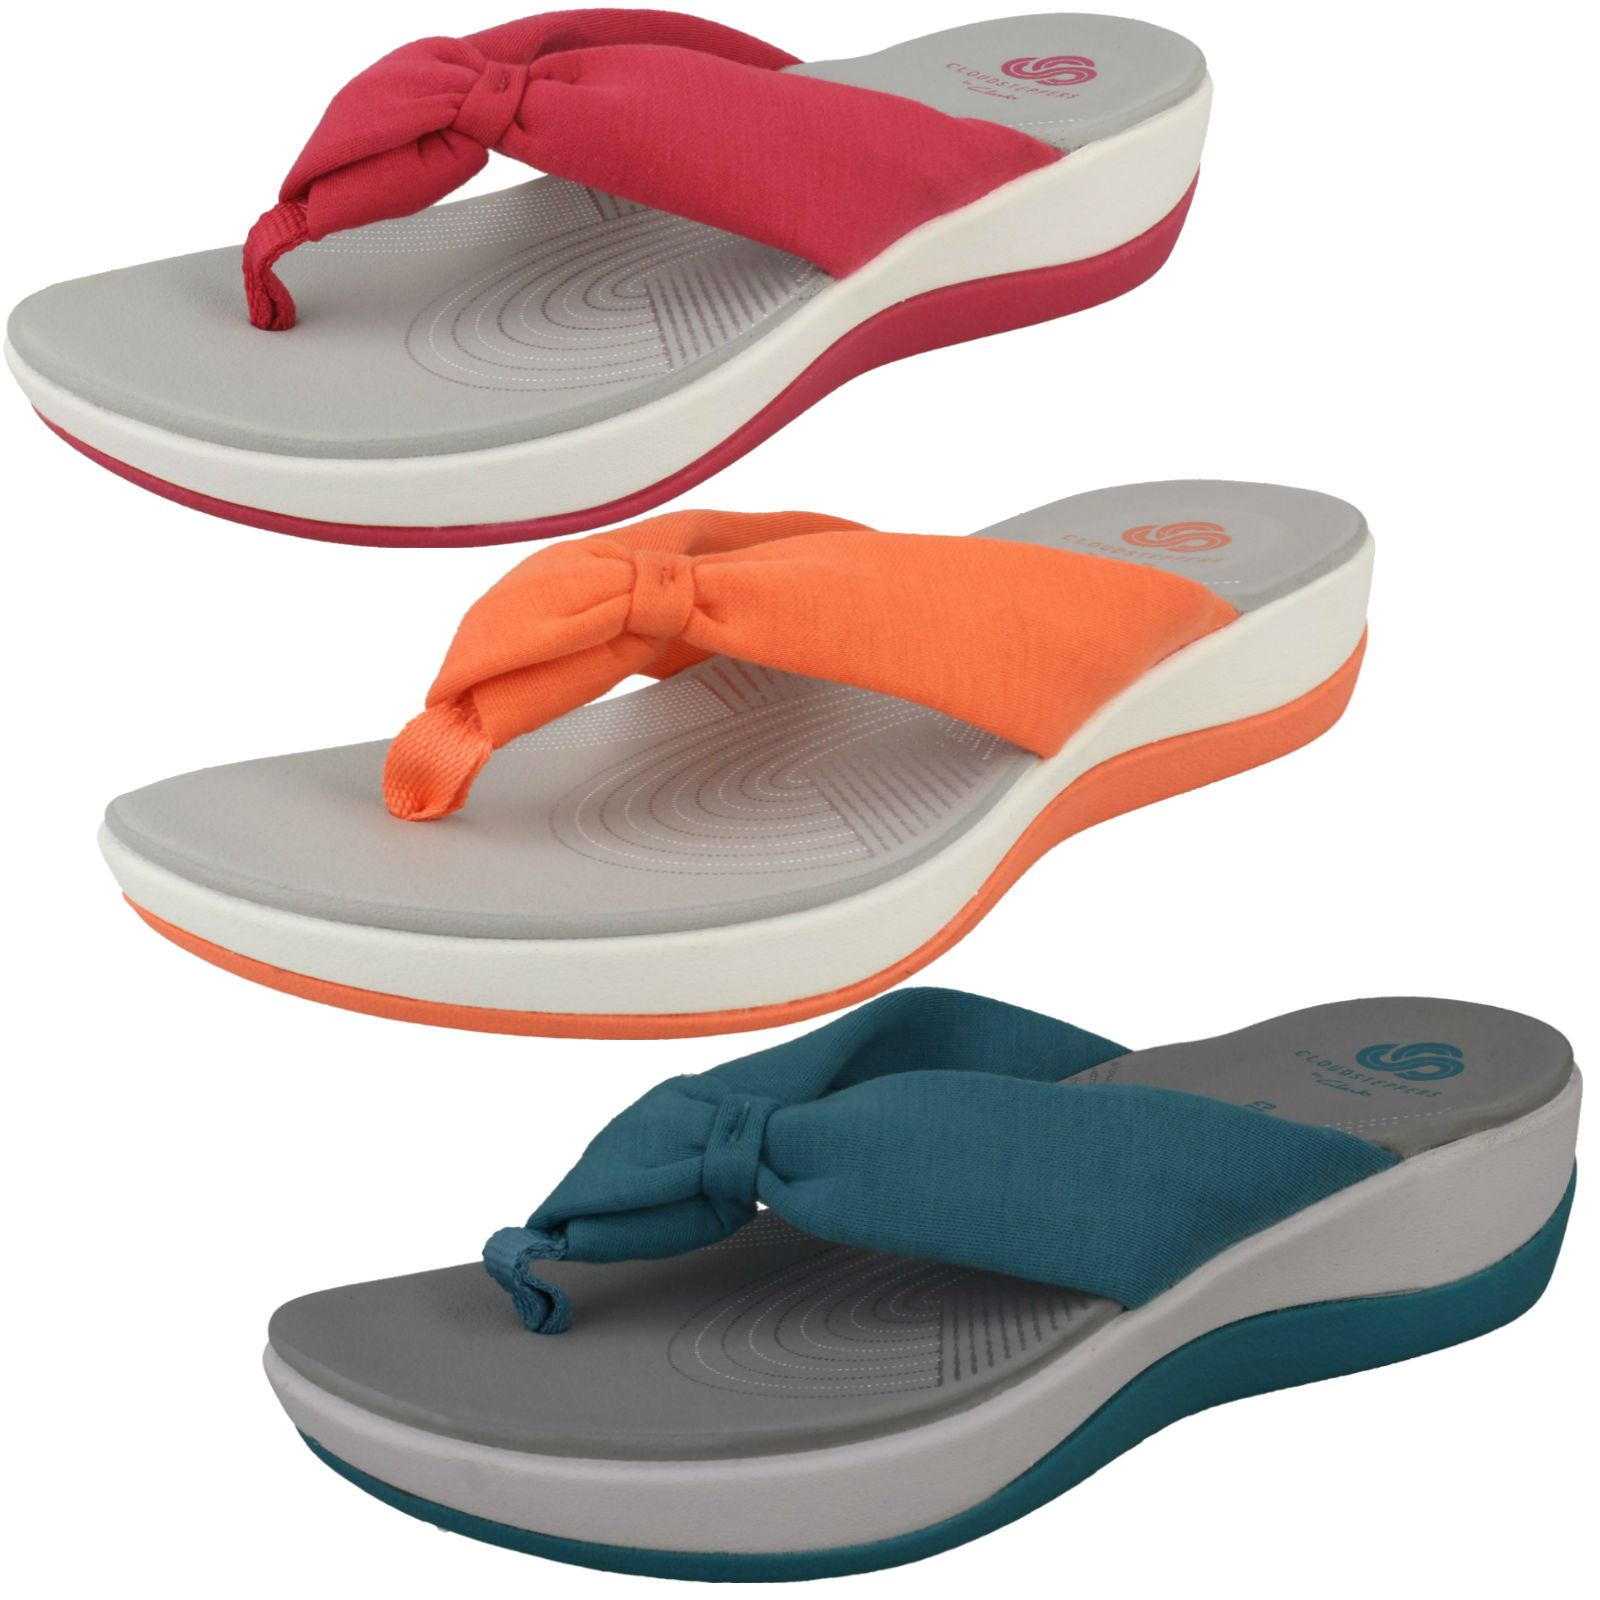 7bf296a43a8 Ladies Clarks Cloud Steppers Toe Post Sandals  Arla Glison